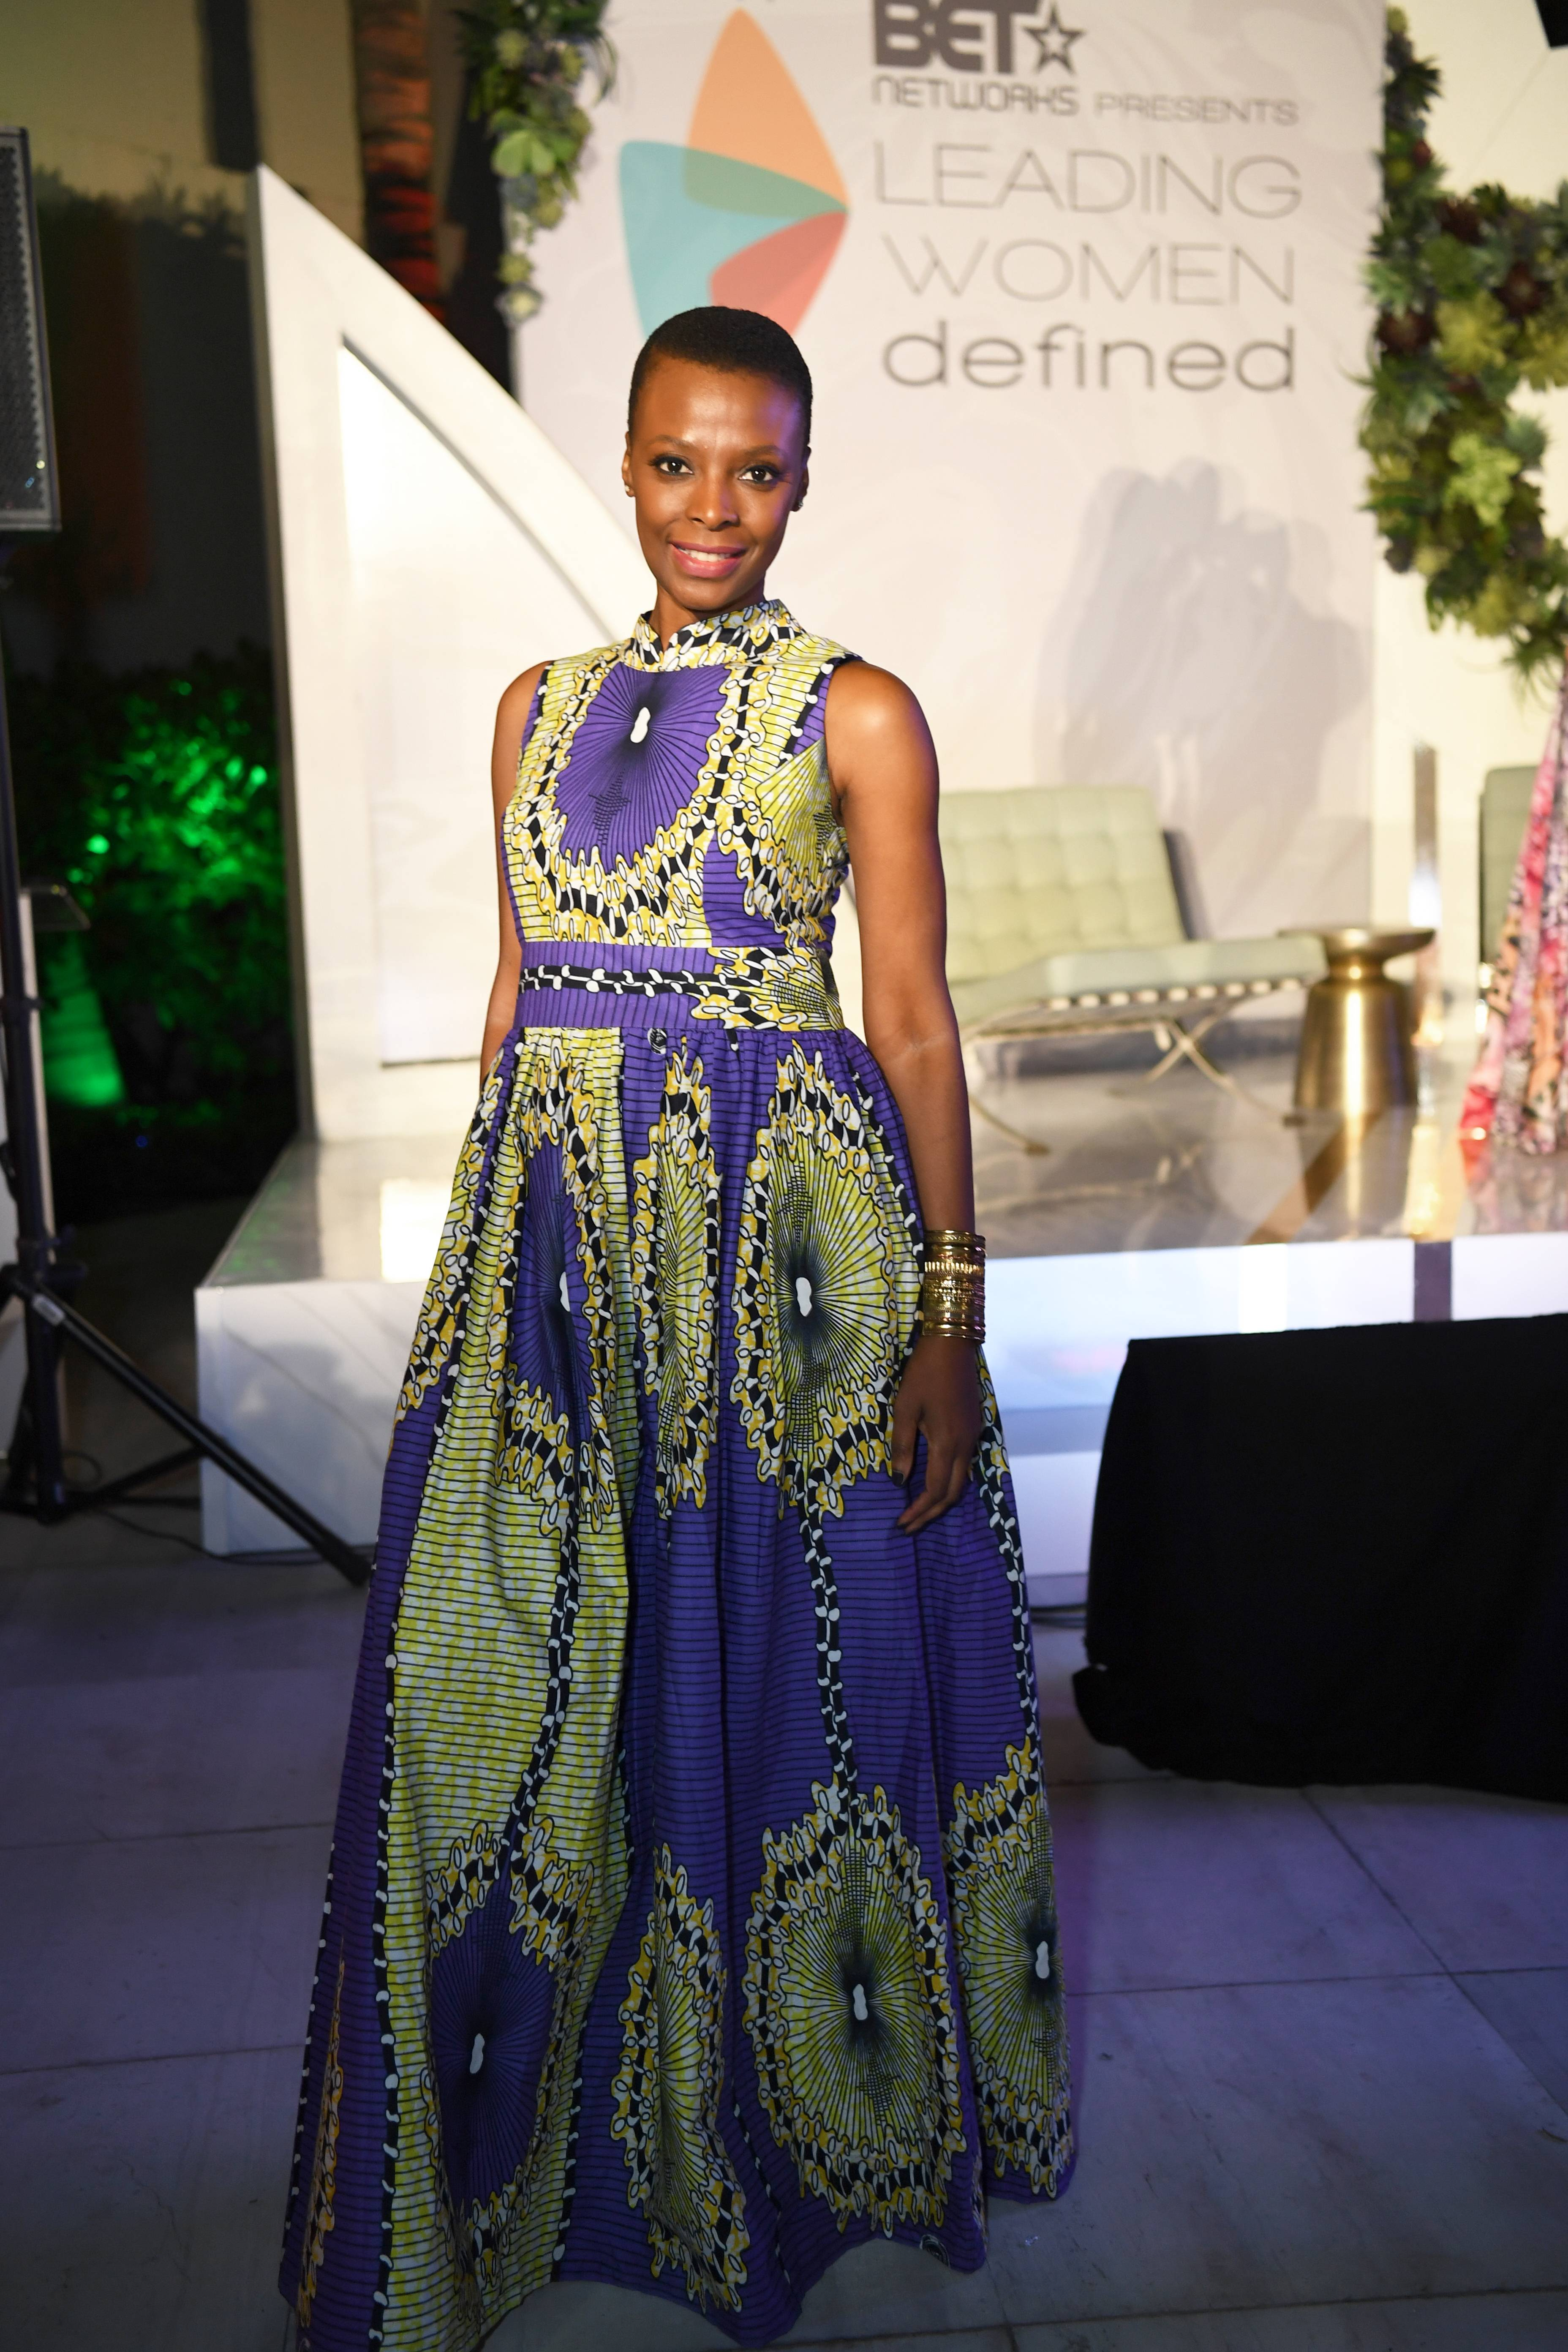 Came to Slay - Another beautiful gown made a statement at the festivities.(Photo: Phelan Marc/BET)